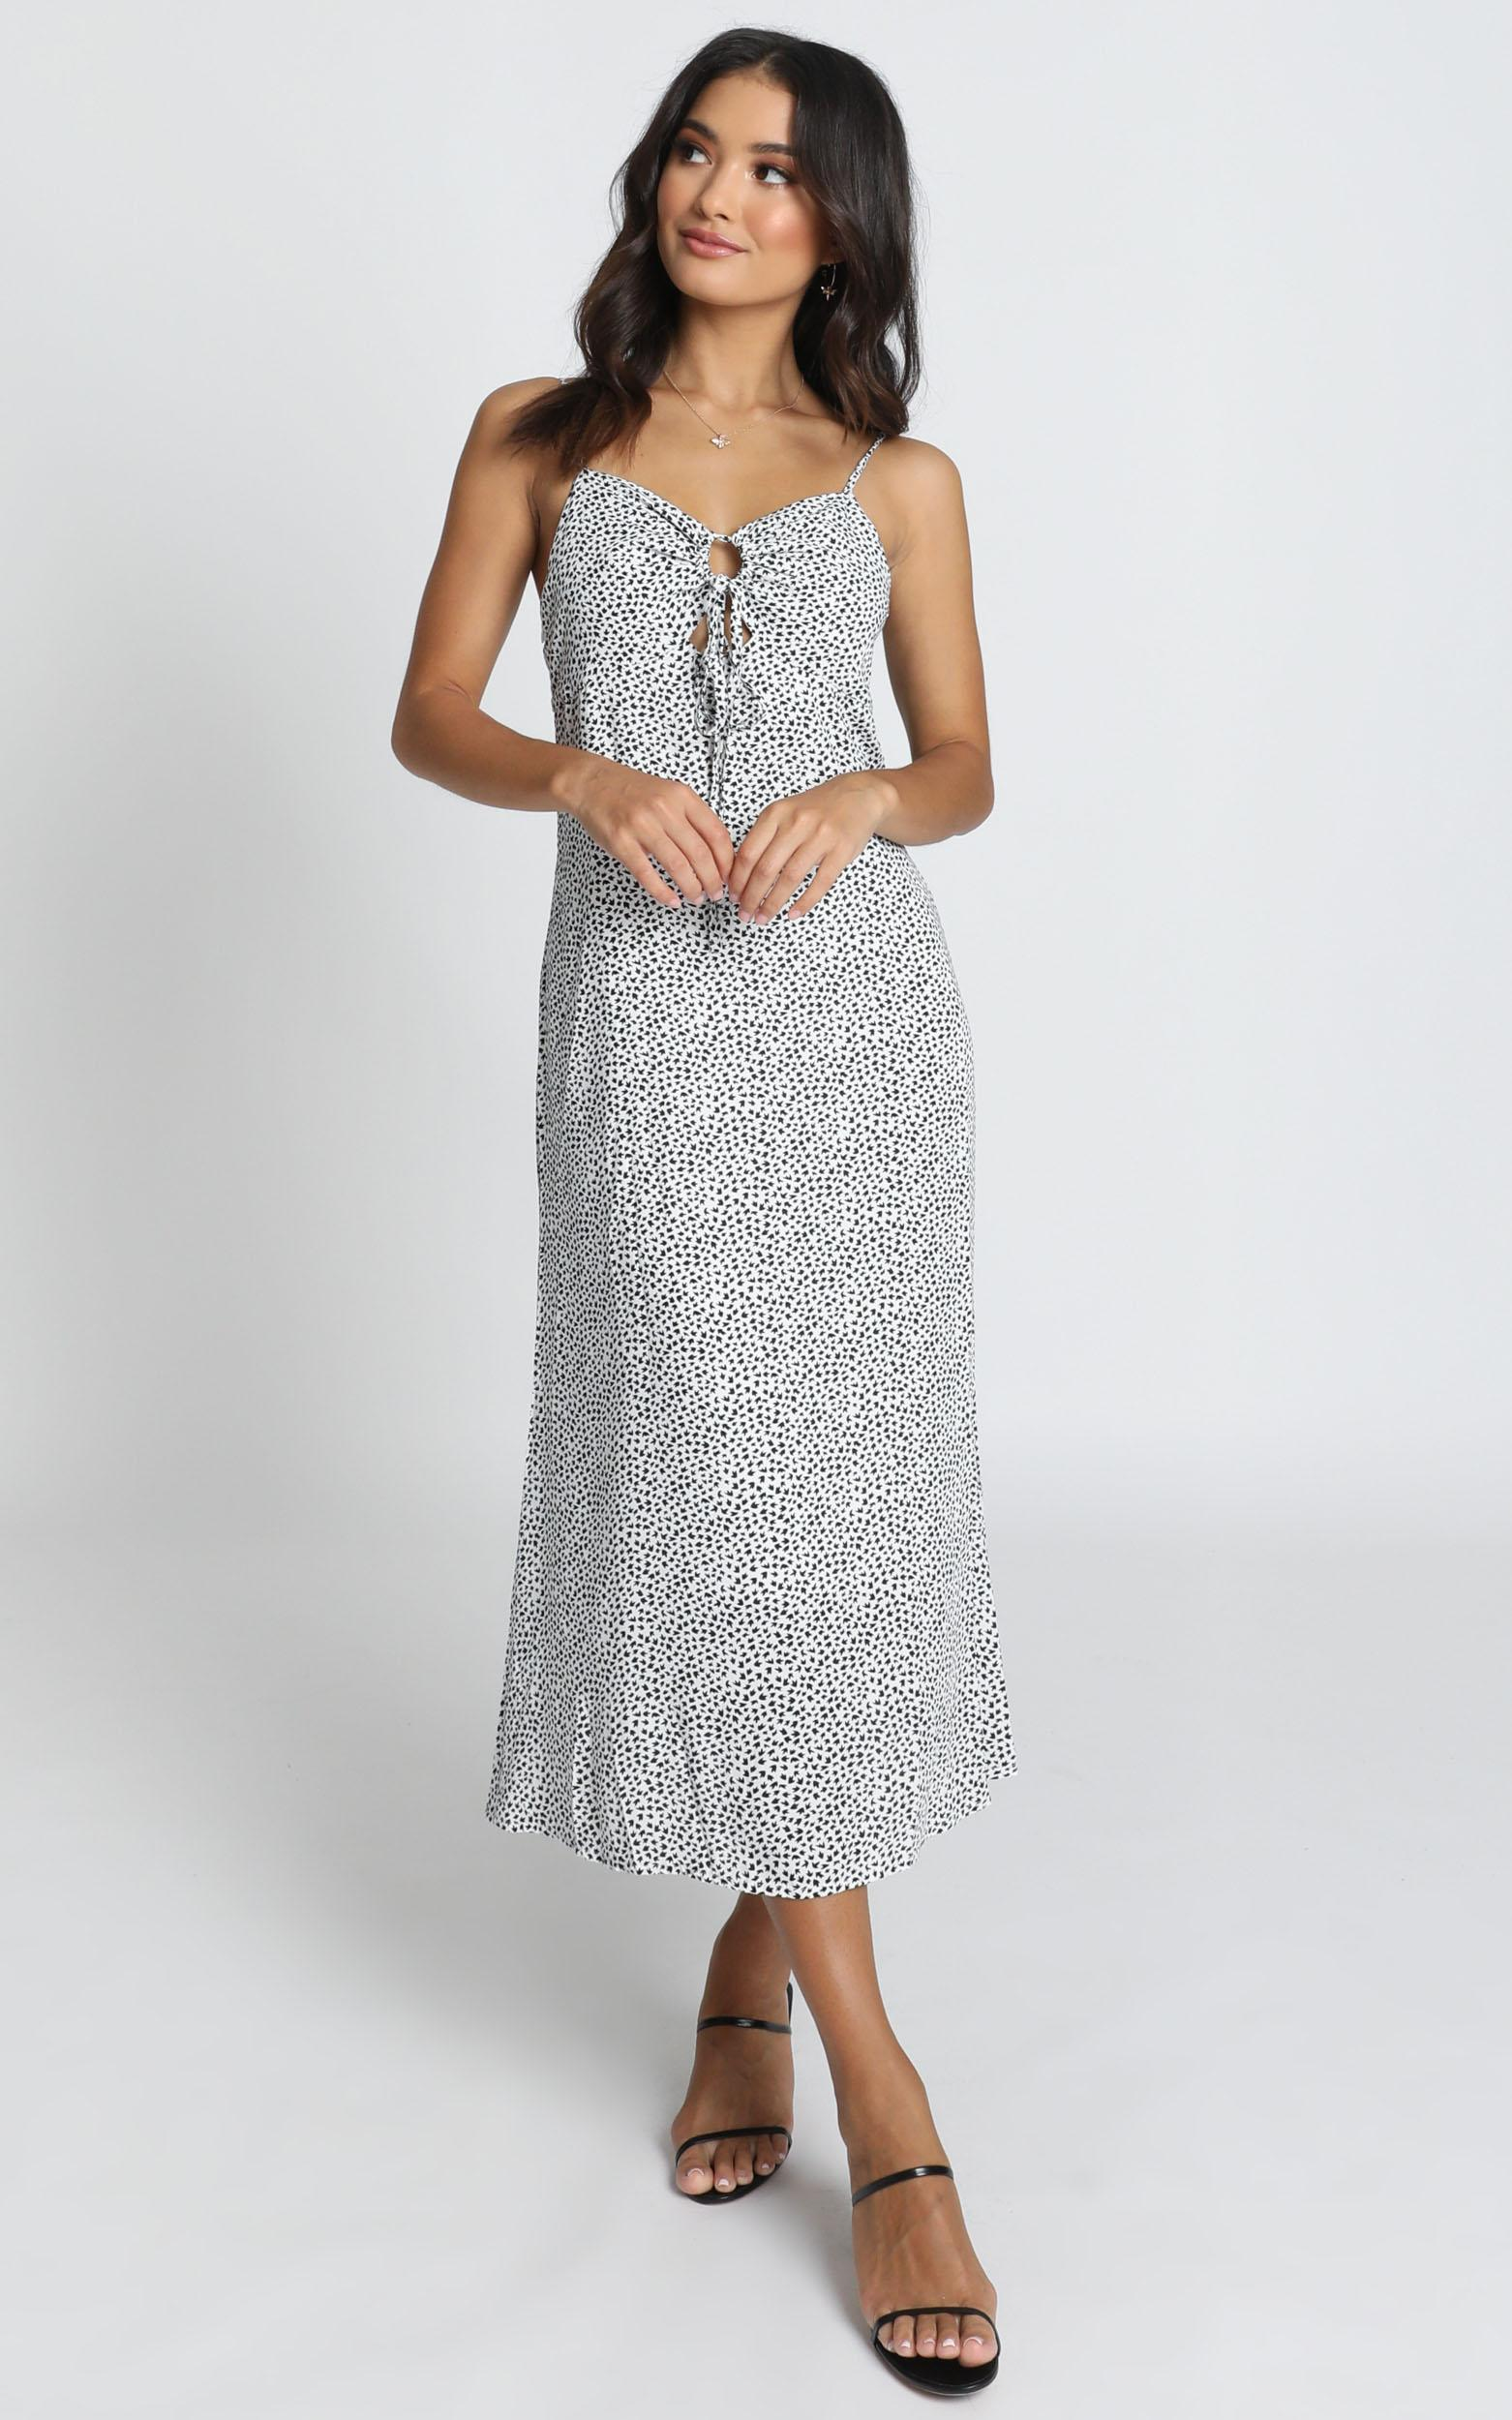 Manhattan Lover Midi Dress in white floral - 14 (XL), White, hi-res image number null